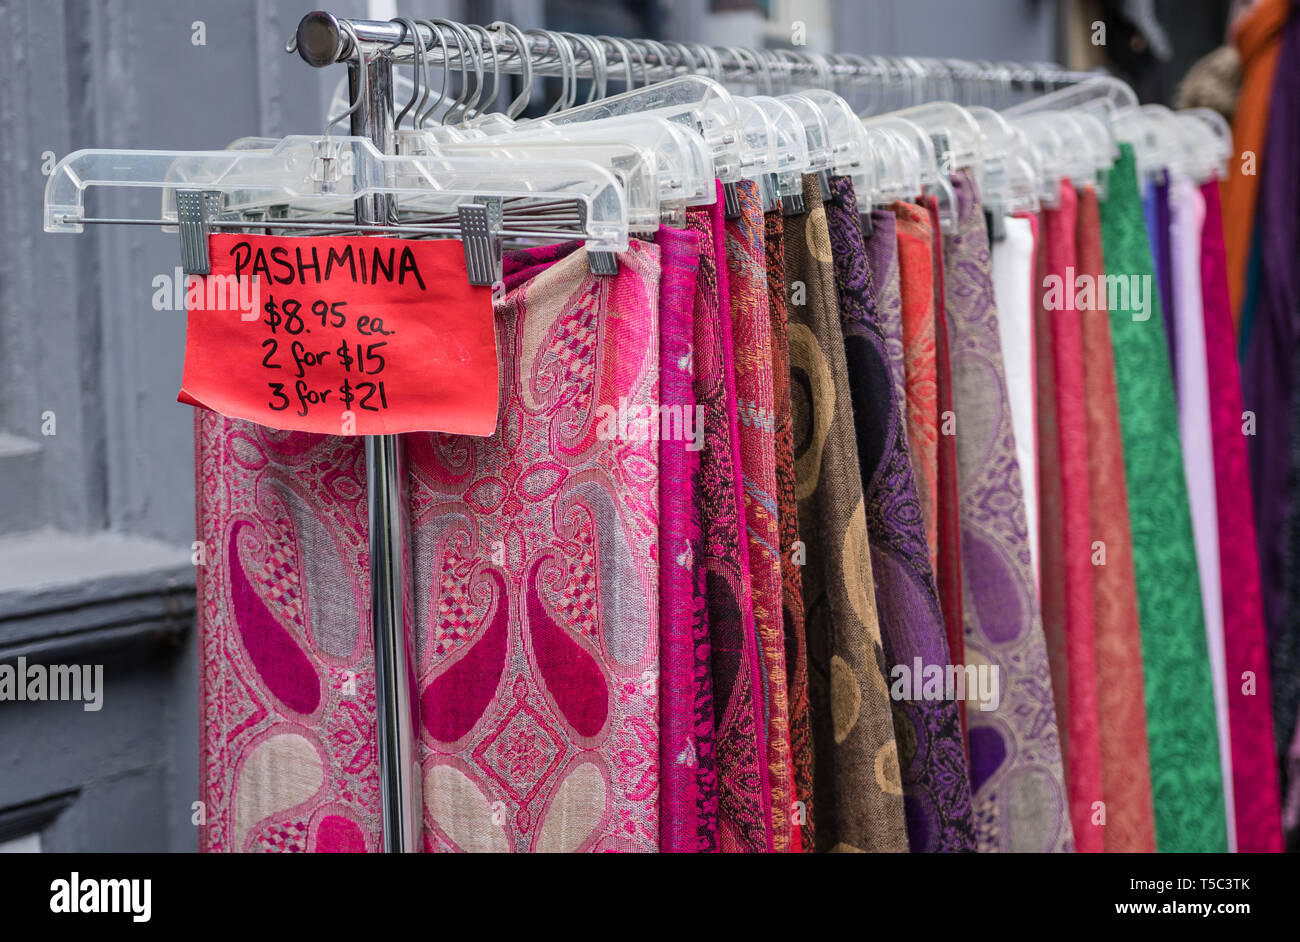 pashmina scarf skirts for sale in Old Port, Maine - Stock Image